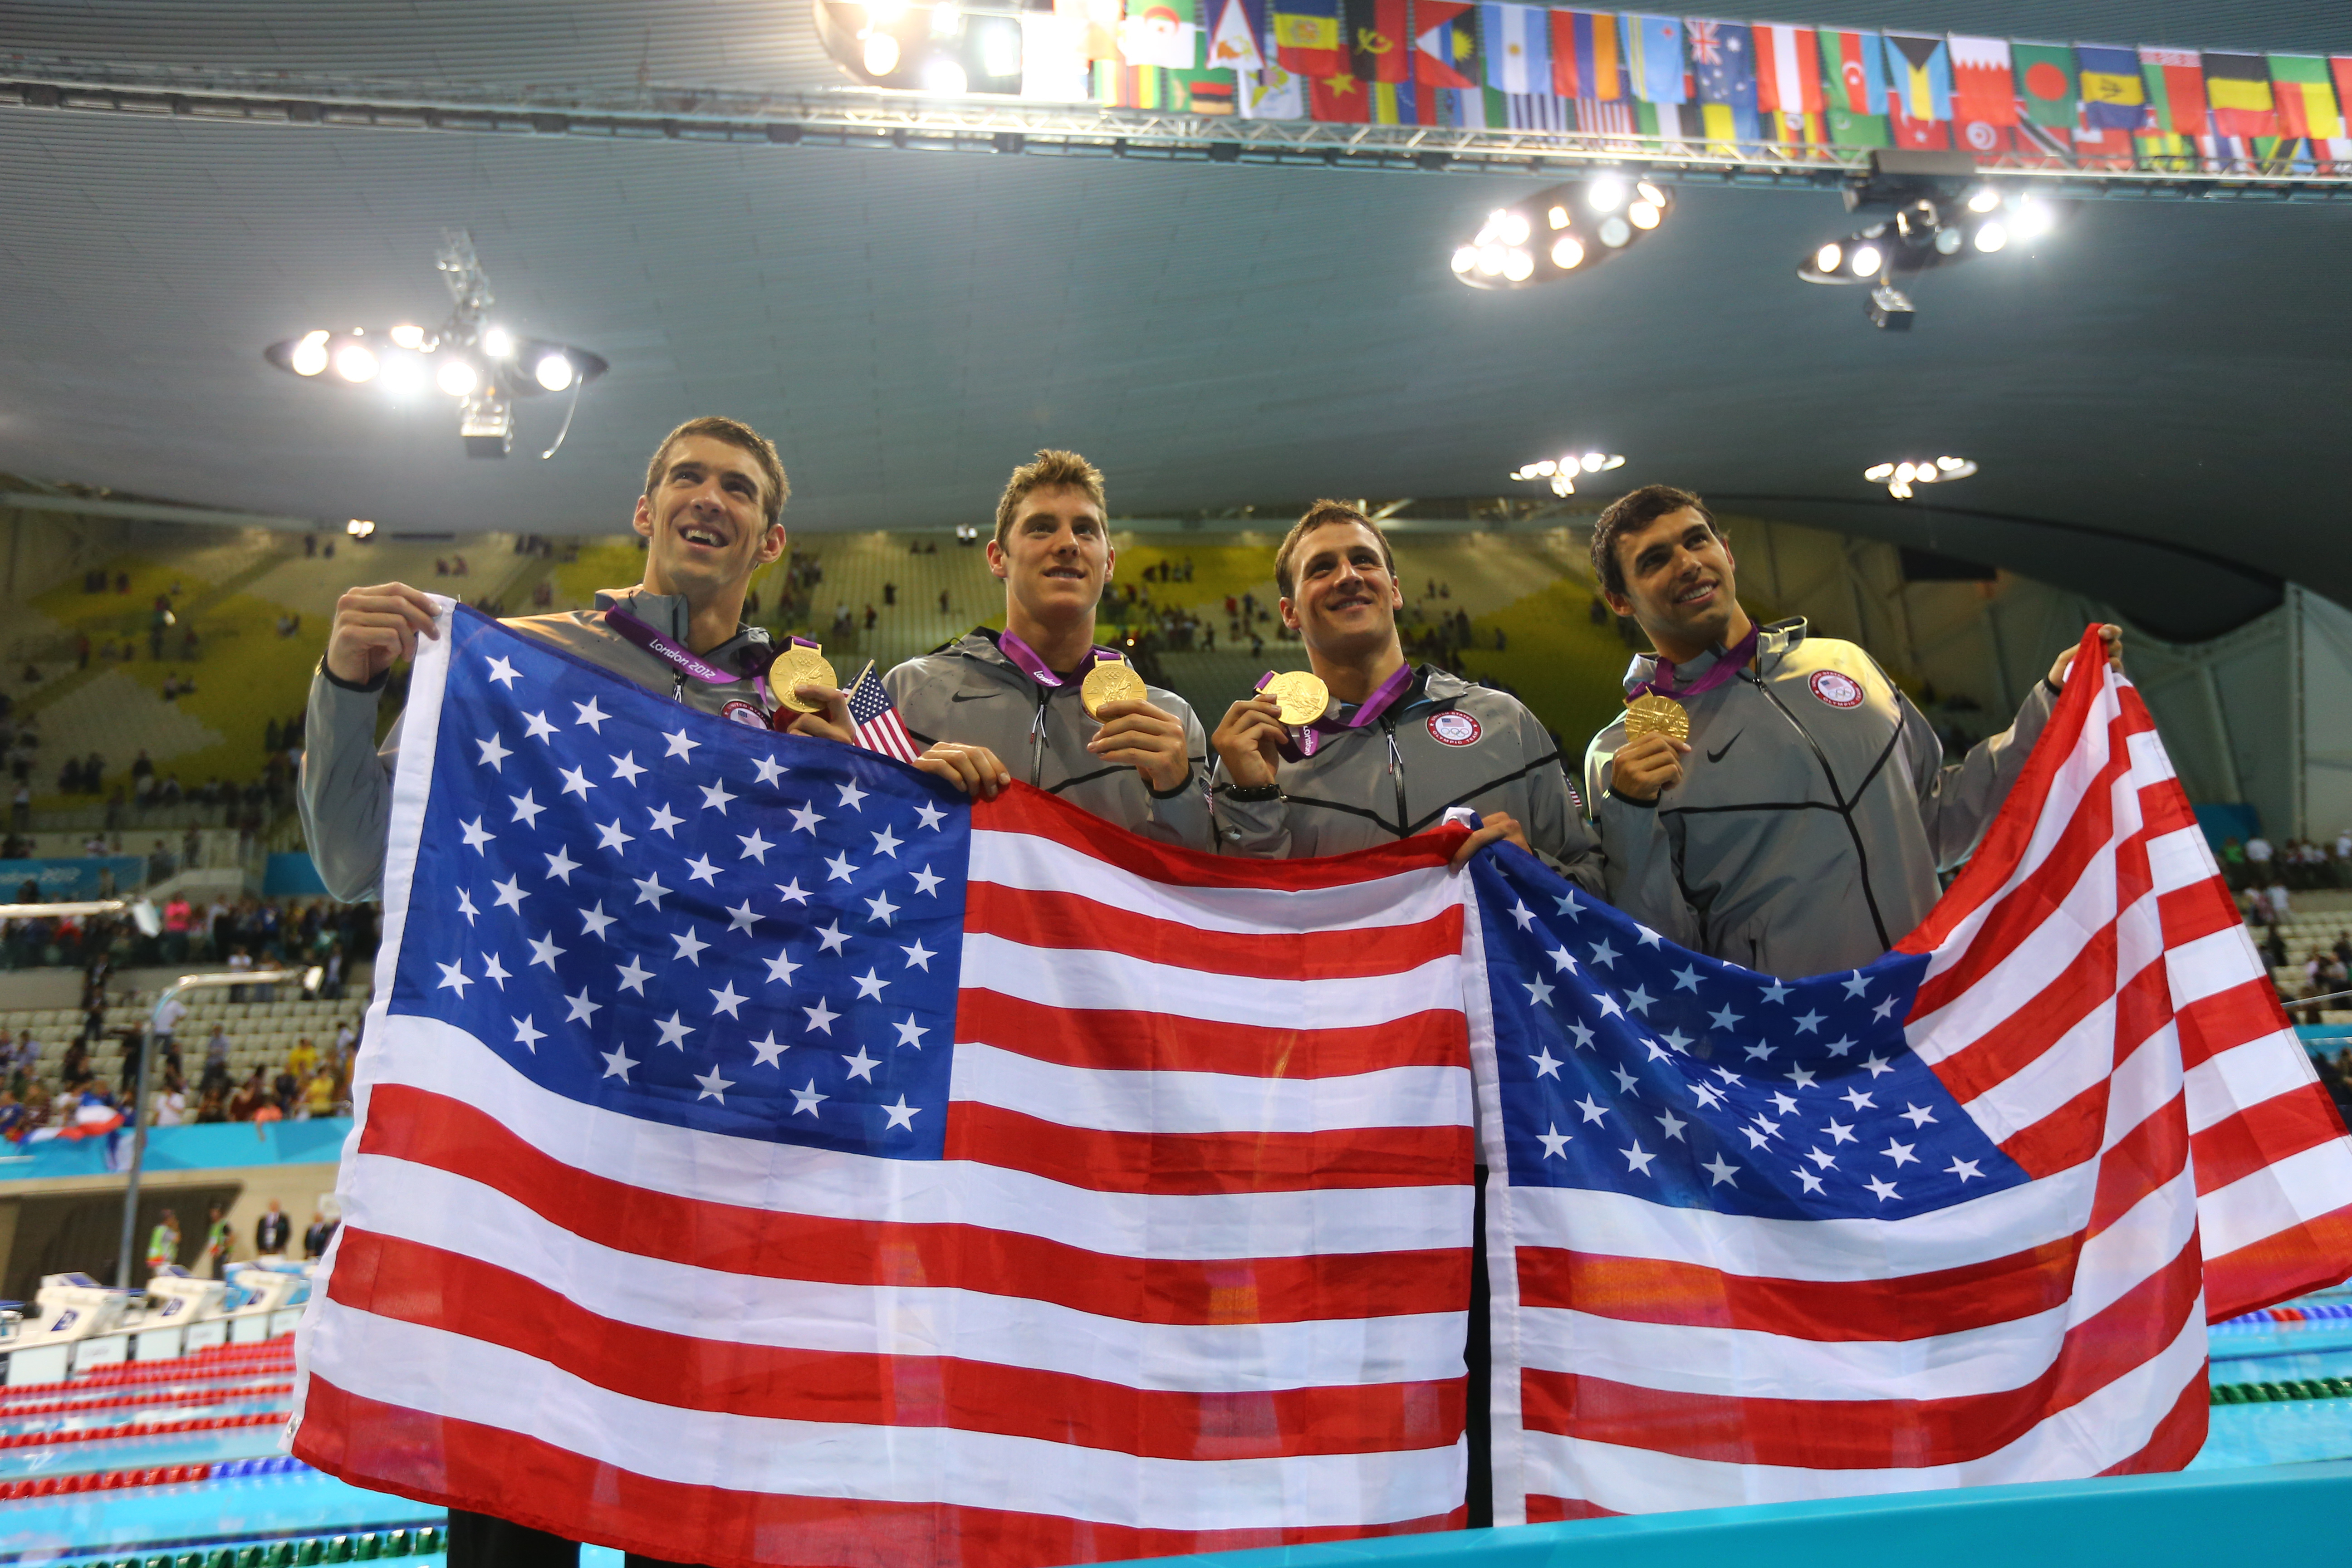 Michael Phelps posed for photos with his fellow gold medal winning relay teammates Ryan Locte, Ricky Berens, and Conor Dwyer.